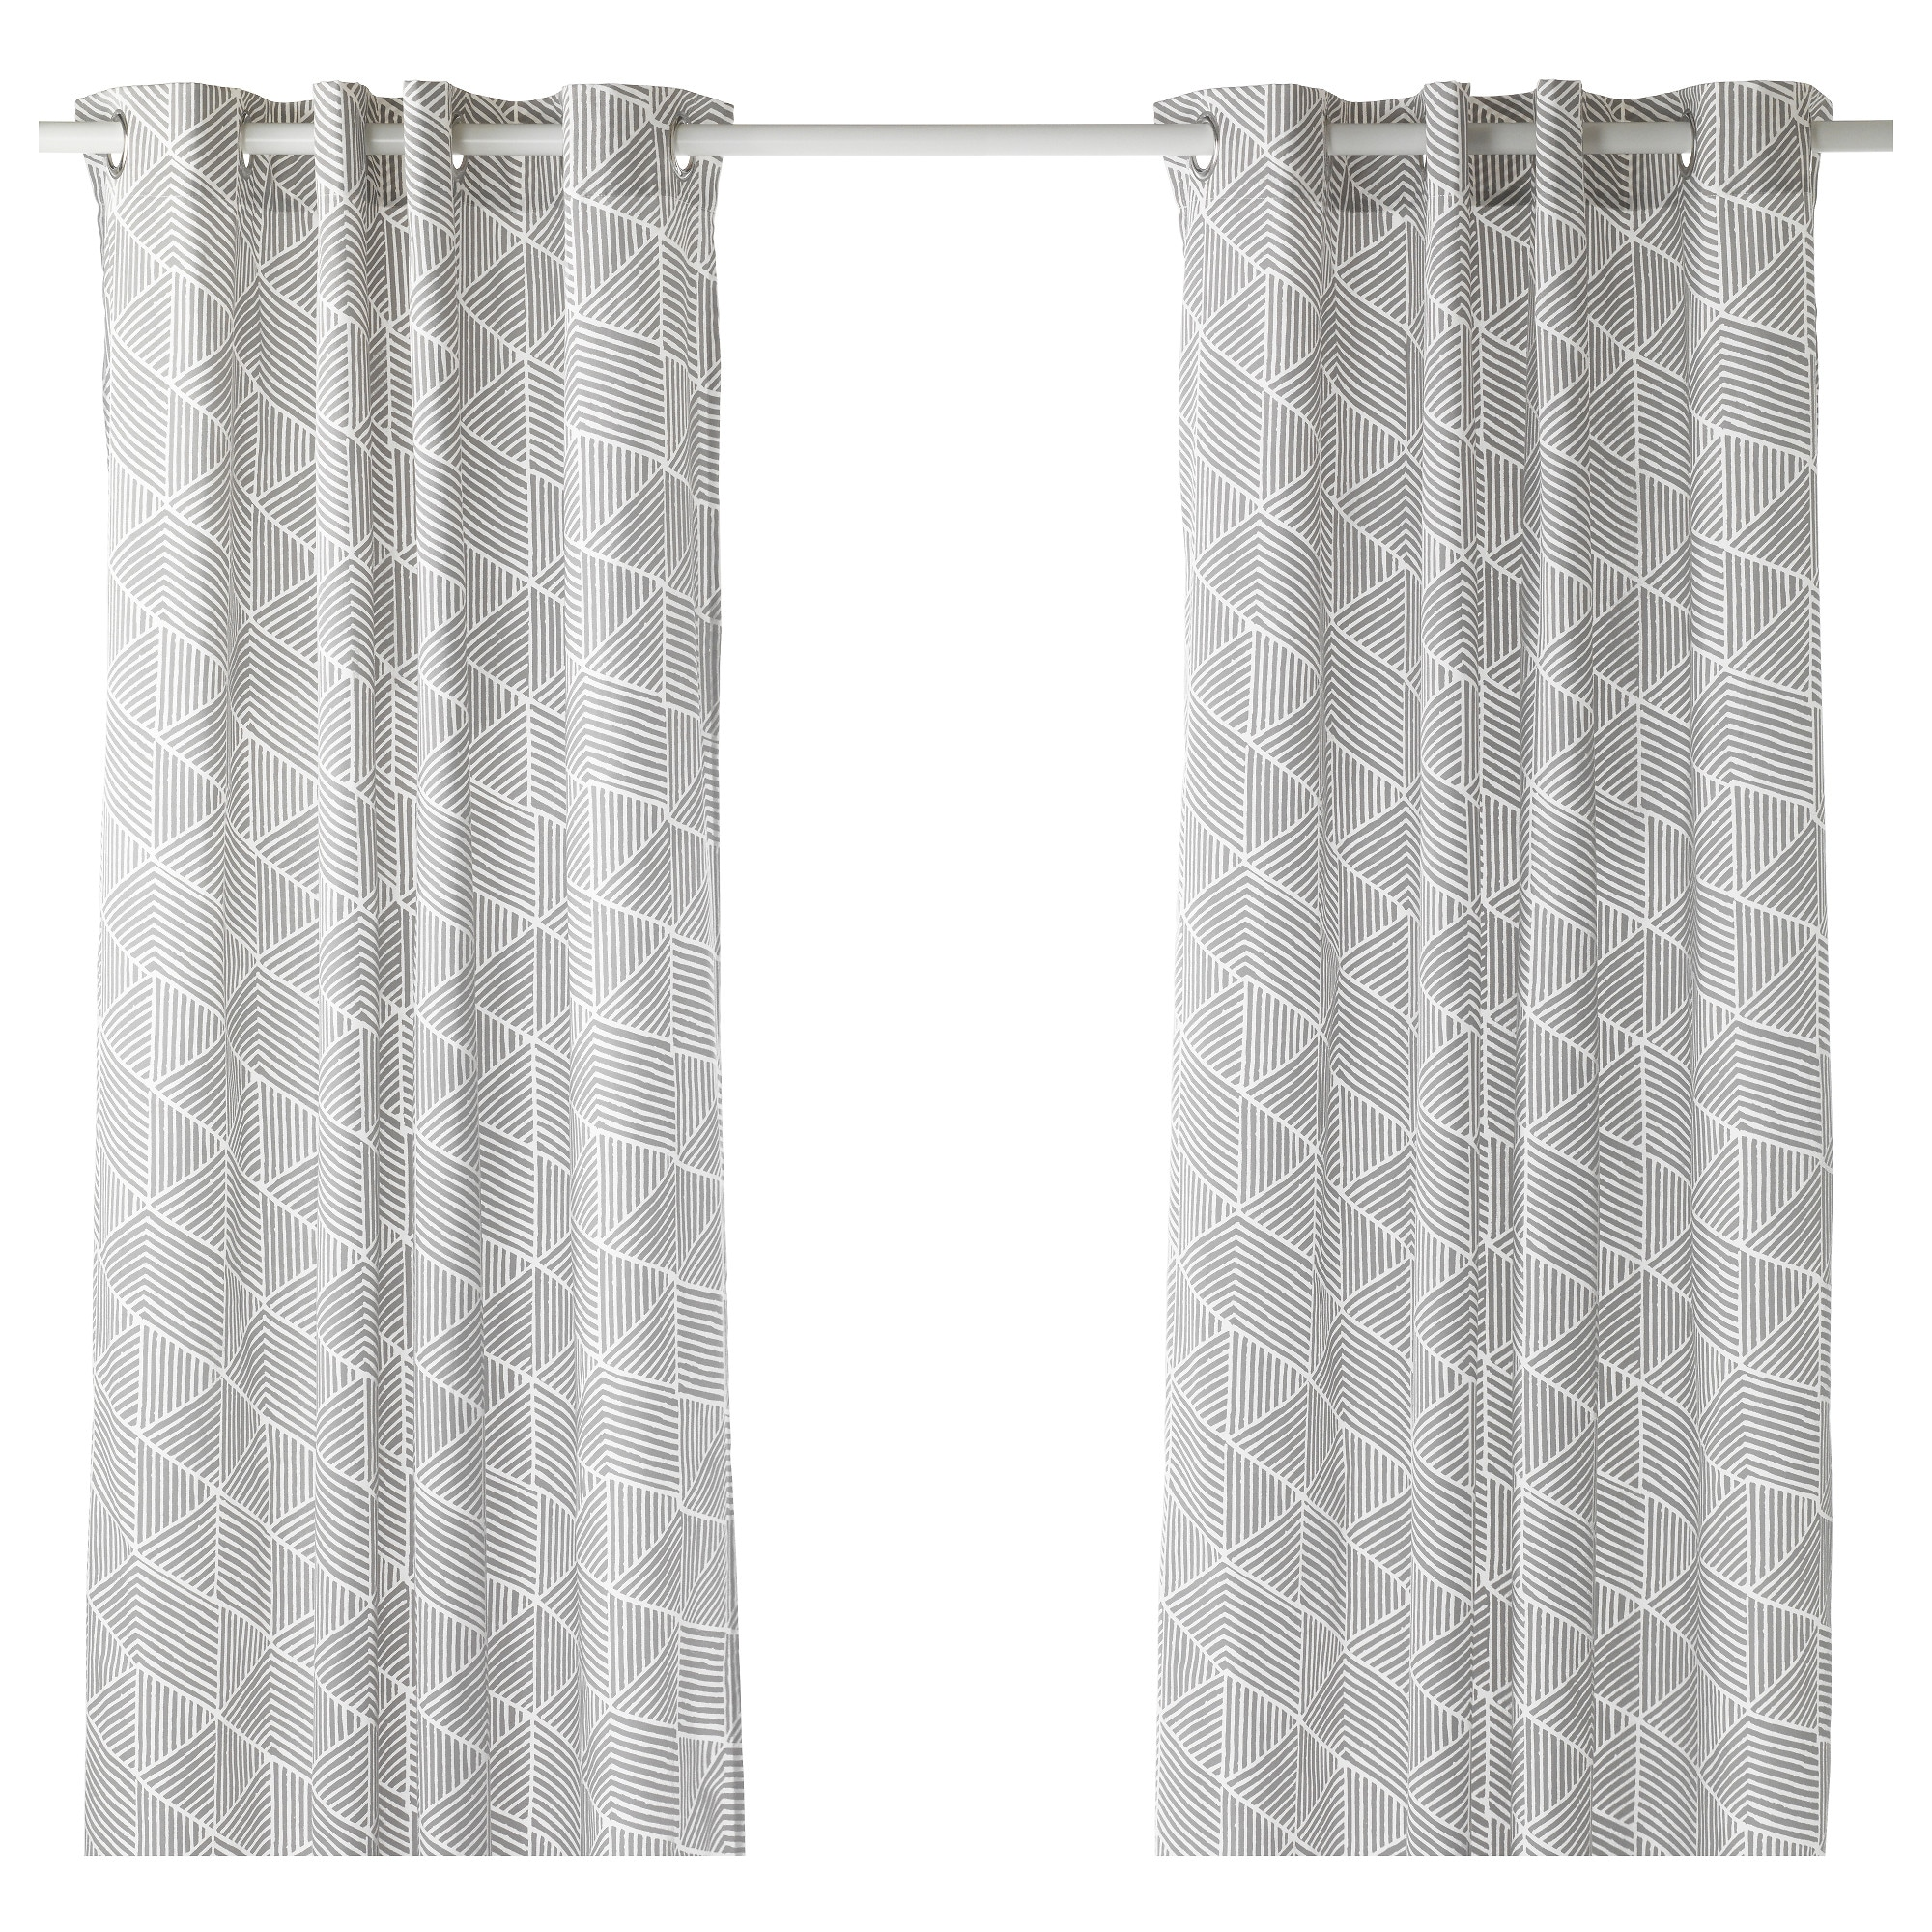 Black and white curtains bedroom - Nunner Rt Curtains 1 Pair Gray White Length 98 Width 57